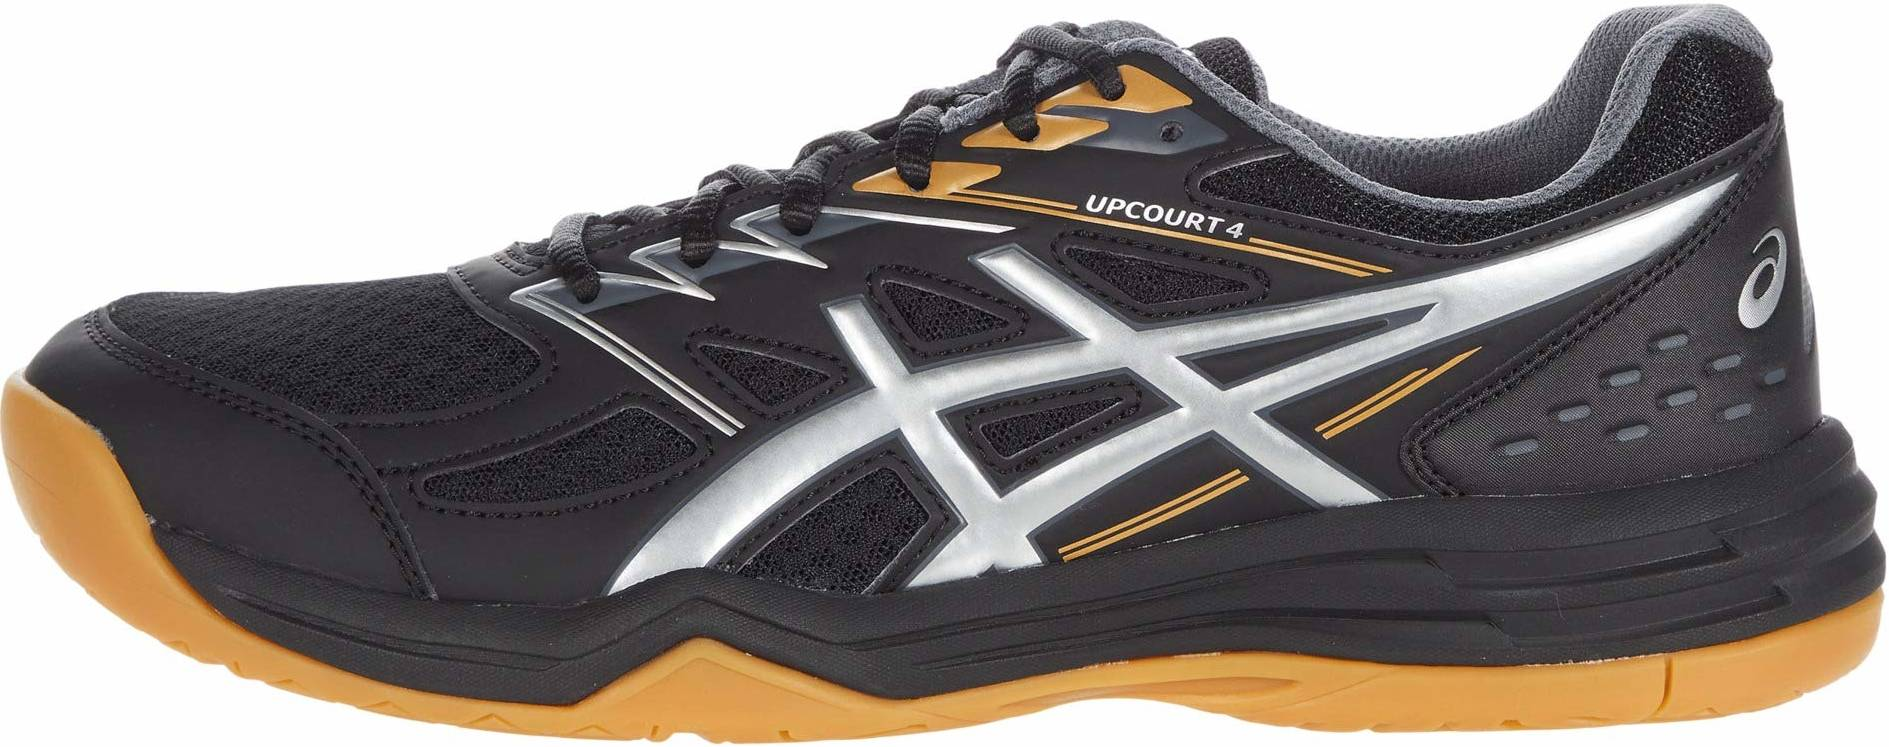 Save 35% on Asics Volleyball Shoes (19